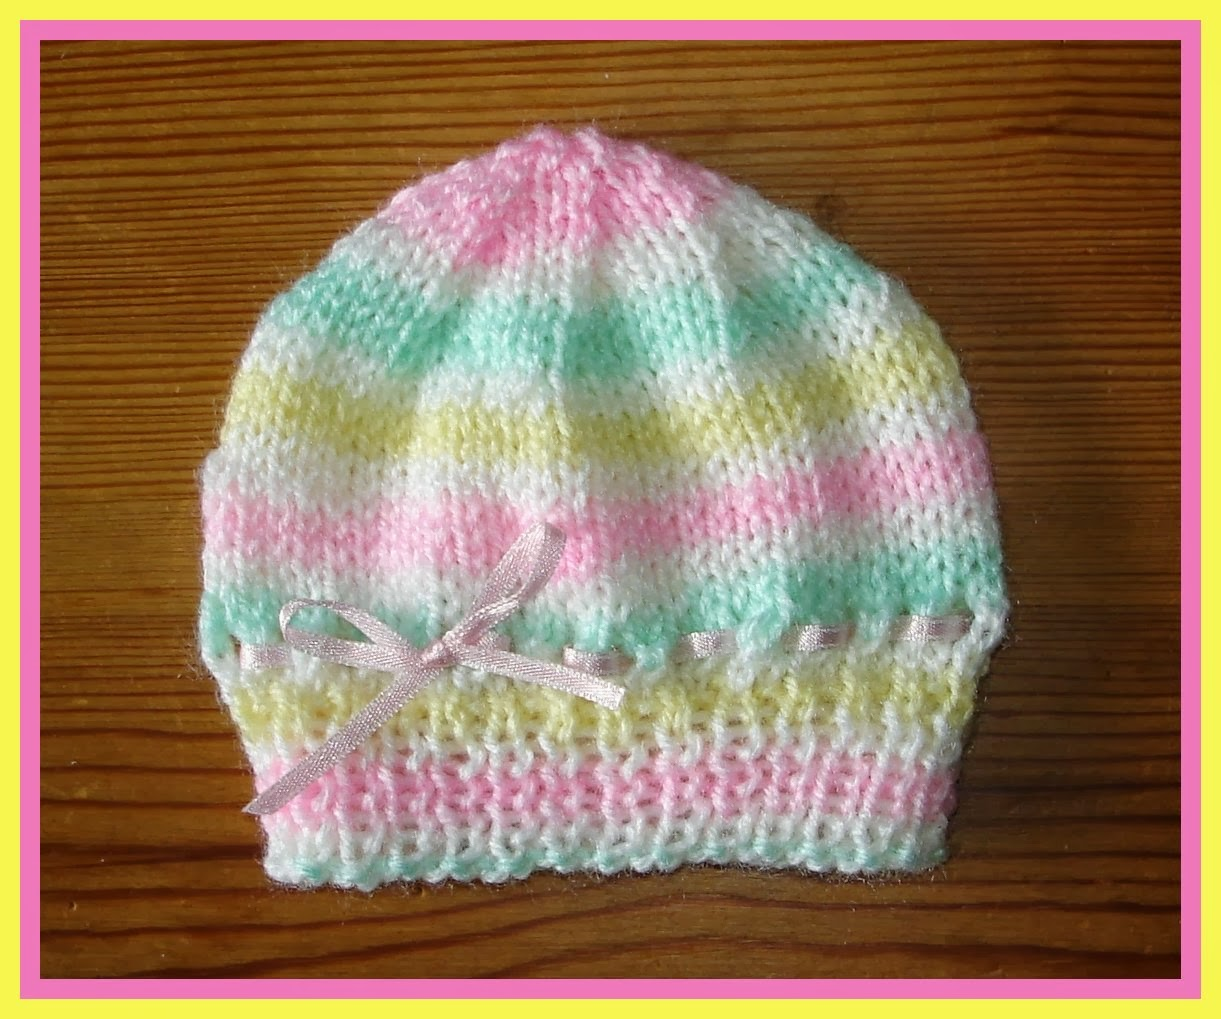 Knitting Patterns Blanket Squares : mariannas lazy daisy days: Candystripe Knitted Baby Hats